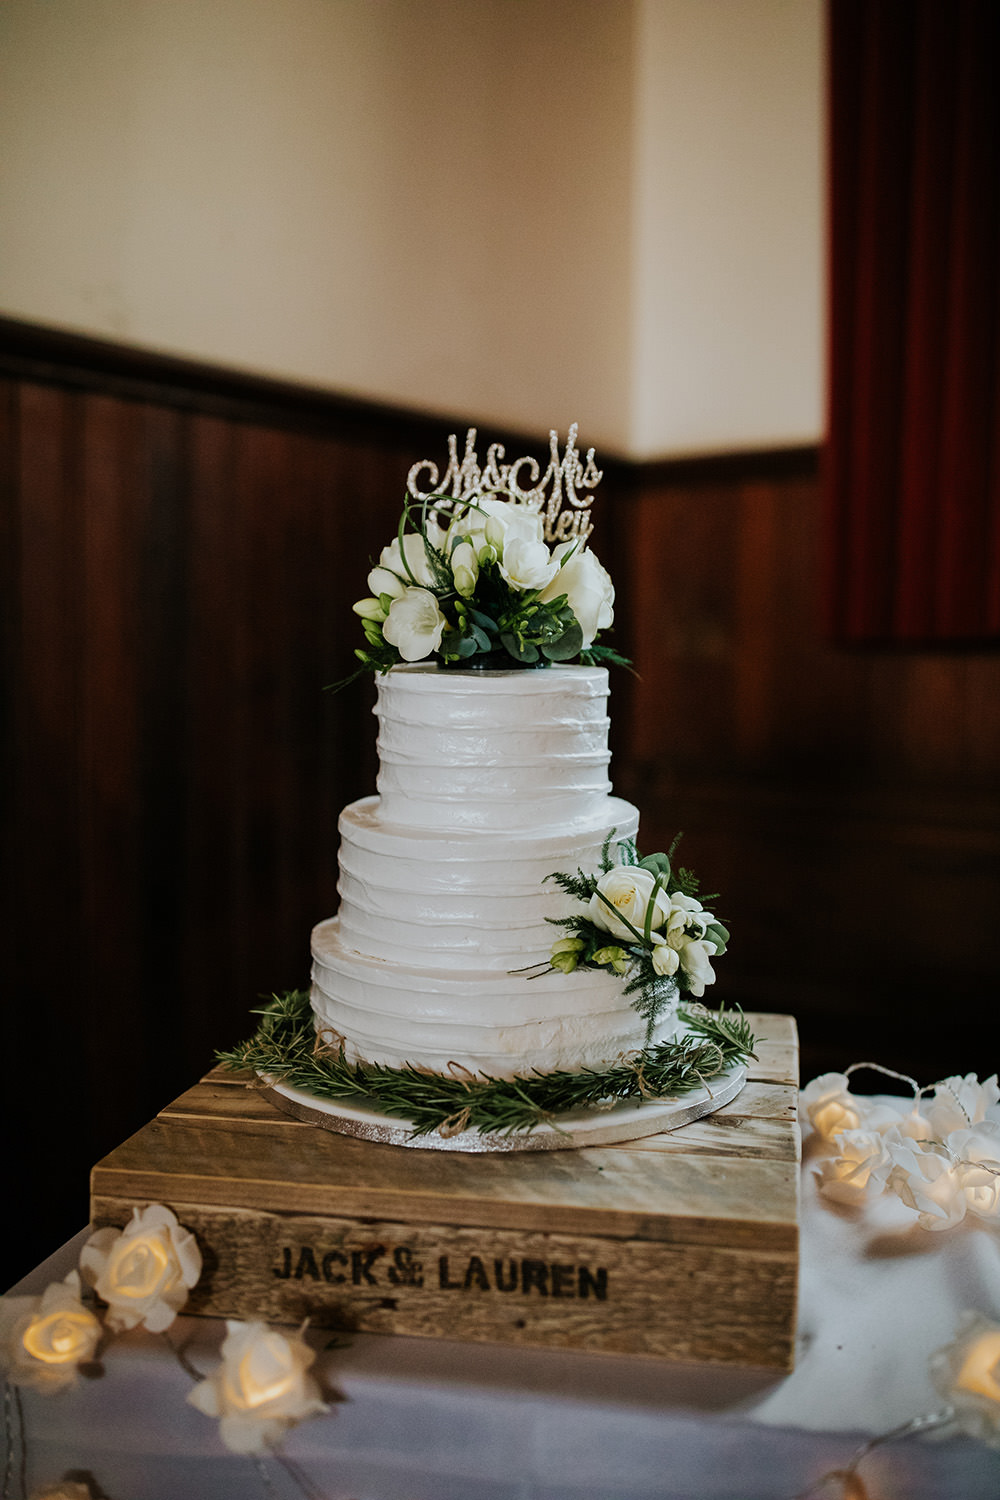 Buttercream Cake Greenery Flowers Crate Topper Scandi Foliage Wedding Ross Alexander Photography